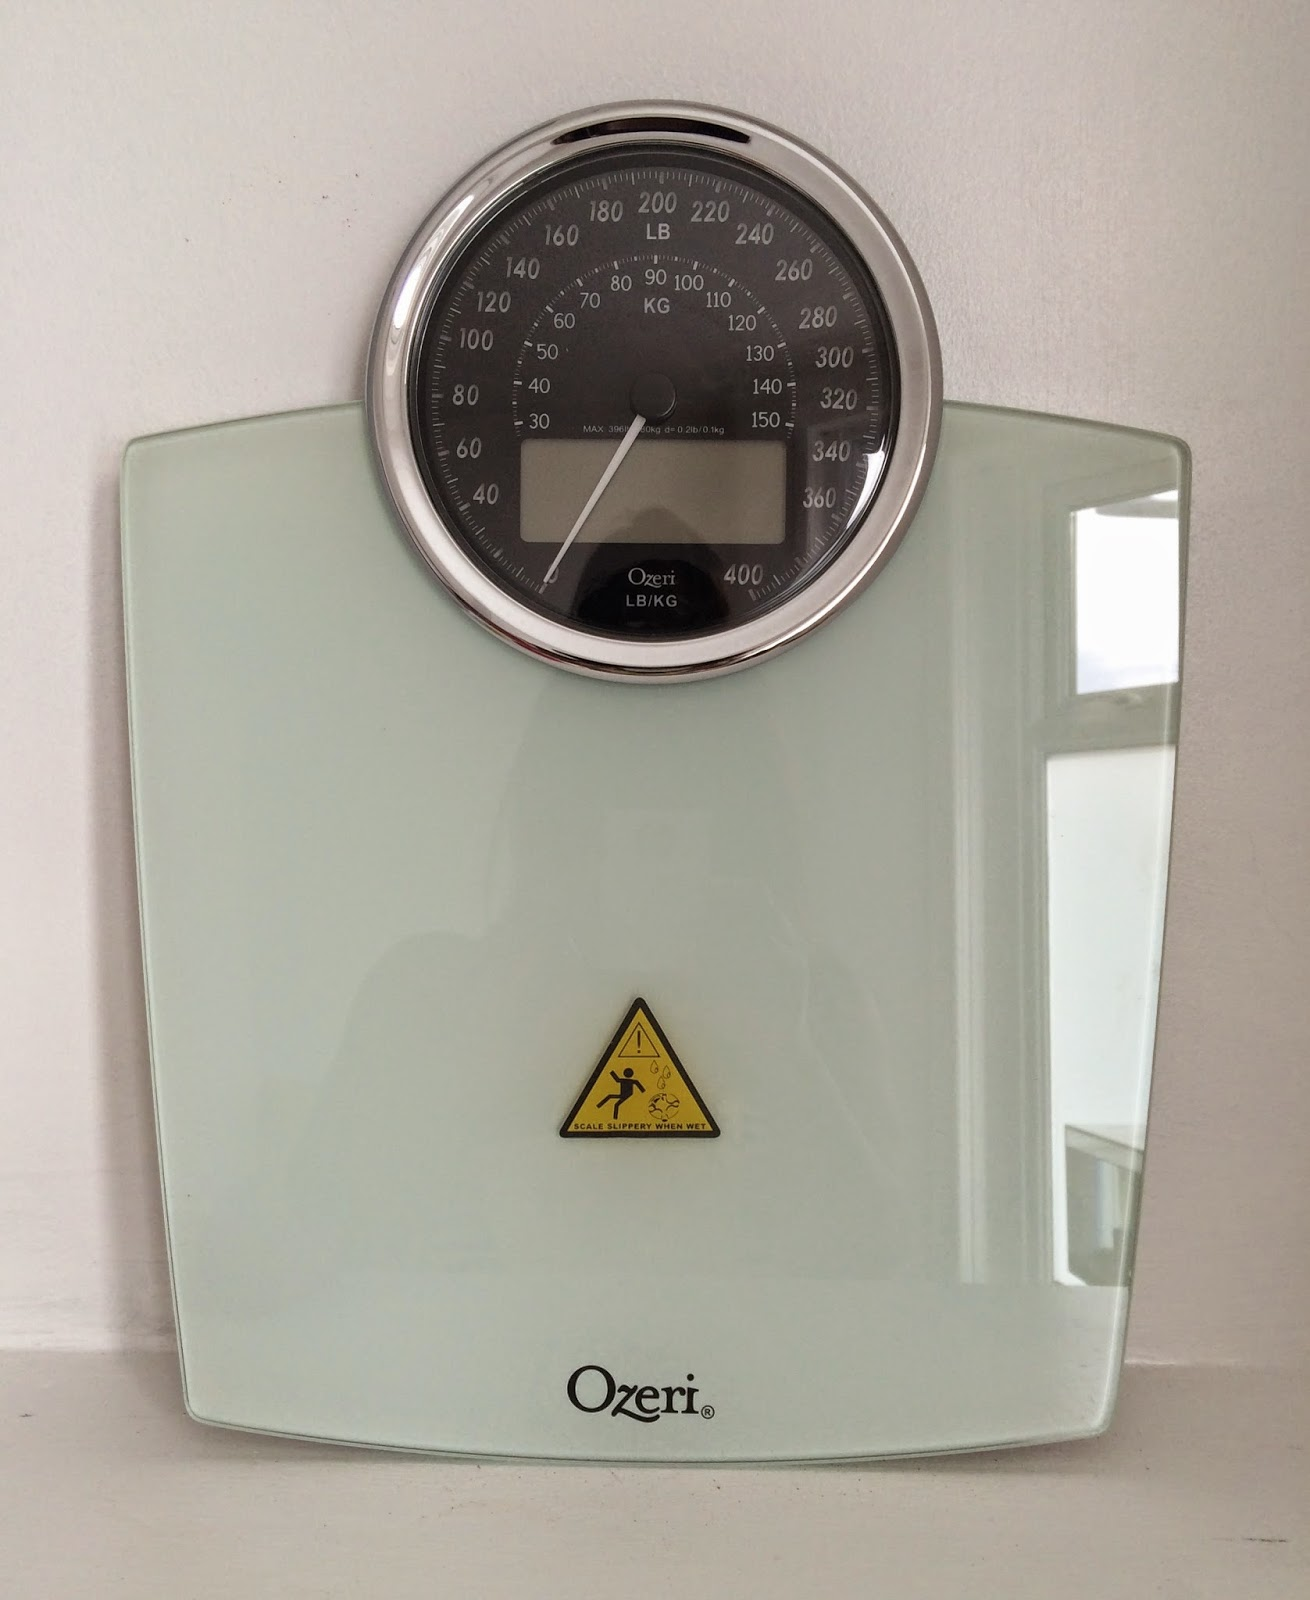 Ozeri Digital Bath Scales, Bath Scales, Weight Loss, Scales, Funky Bathroom Accessories, Bathroom Accessories